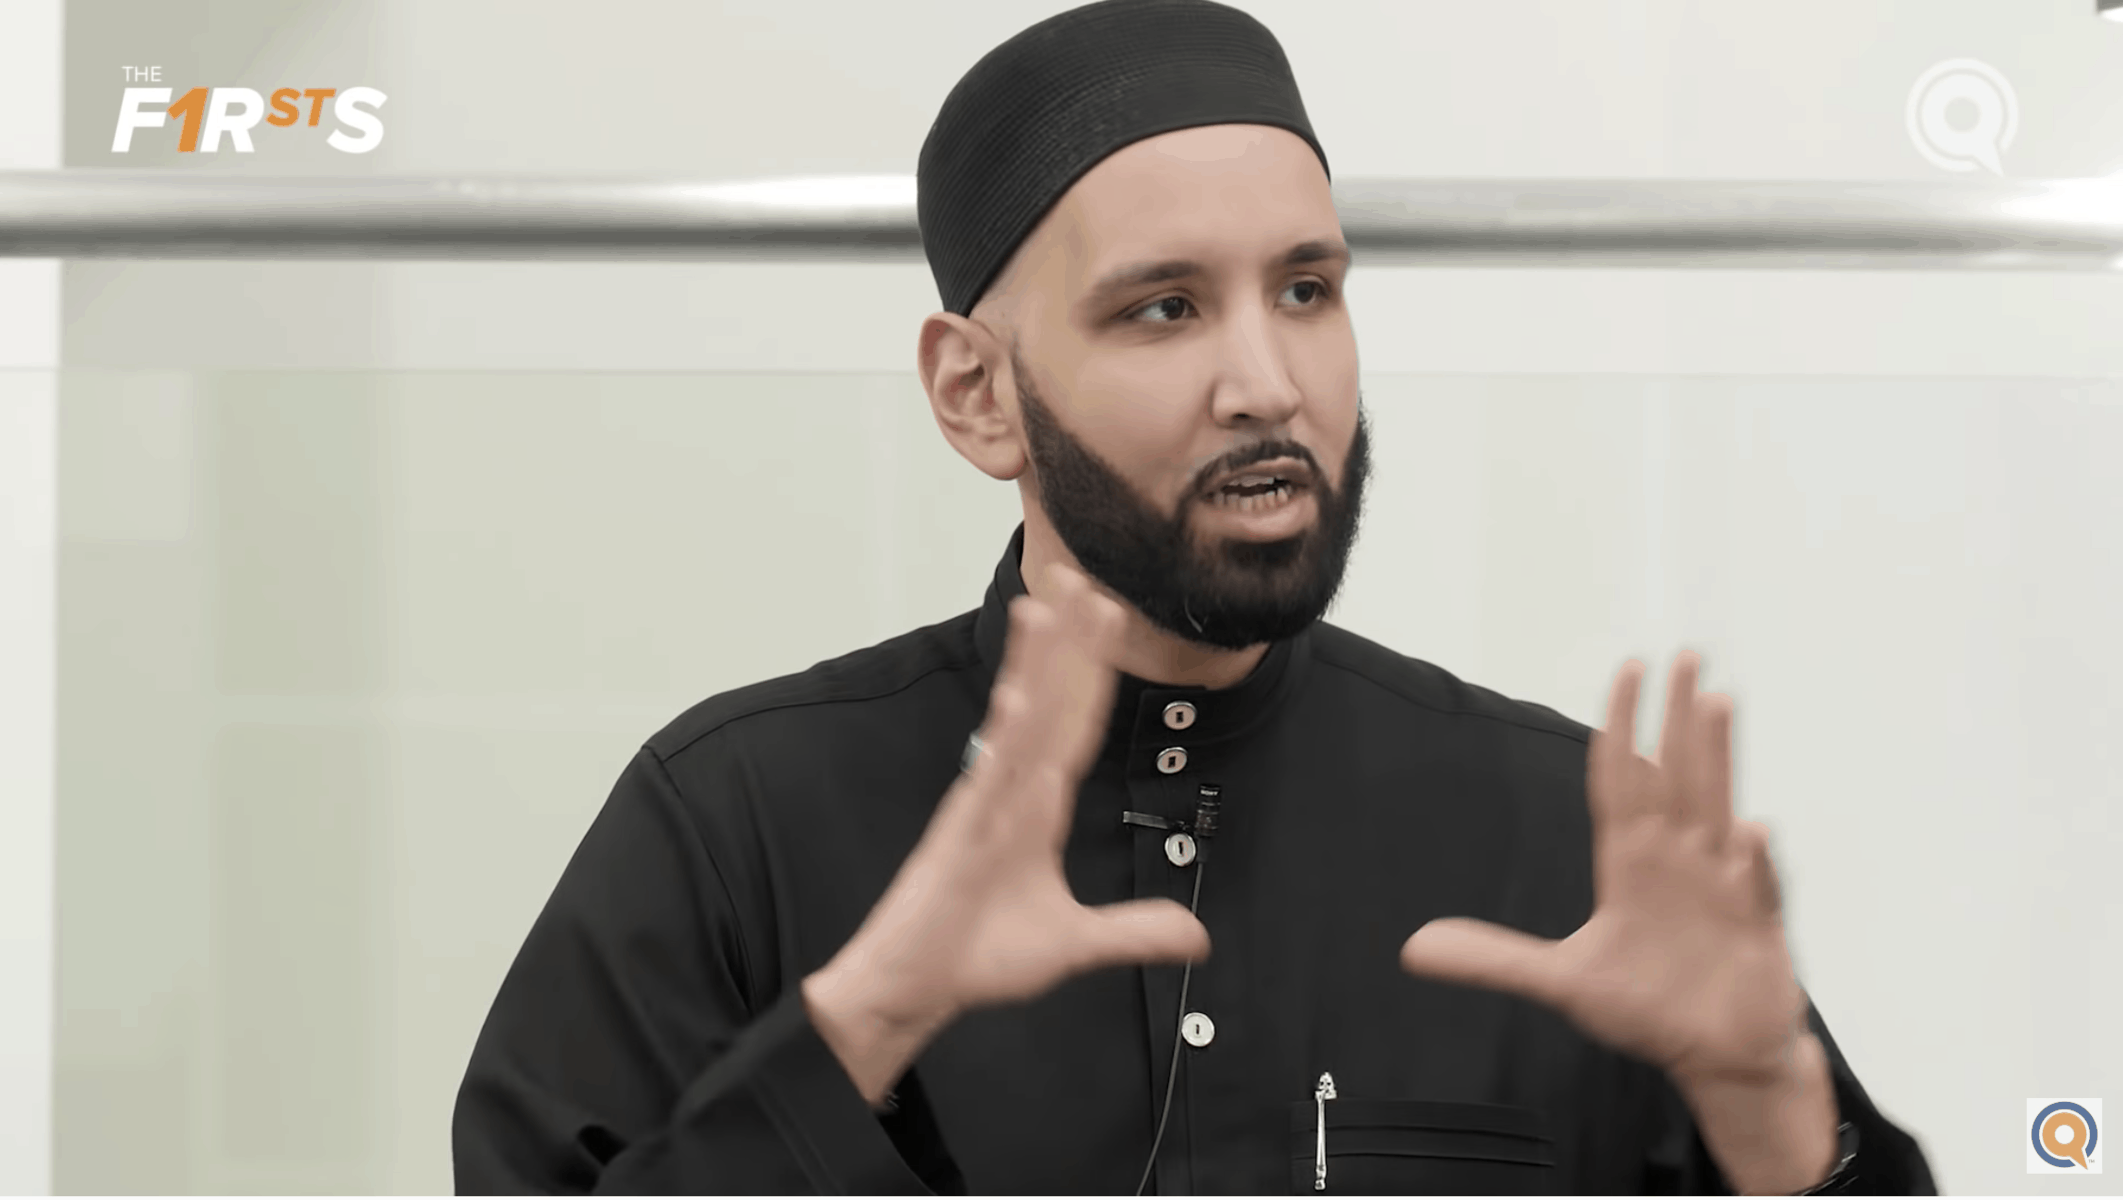 Omar Suleiman – The Firsts (Episode 7): The First Family: Ali (ra) and Fatima (ra)